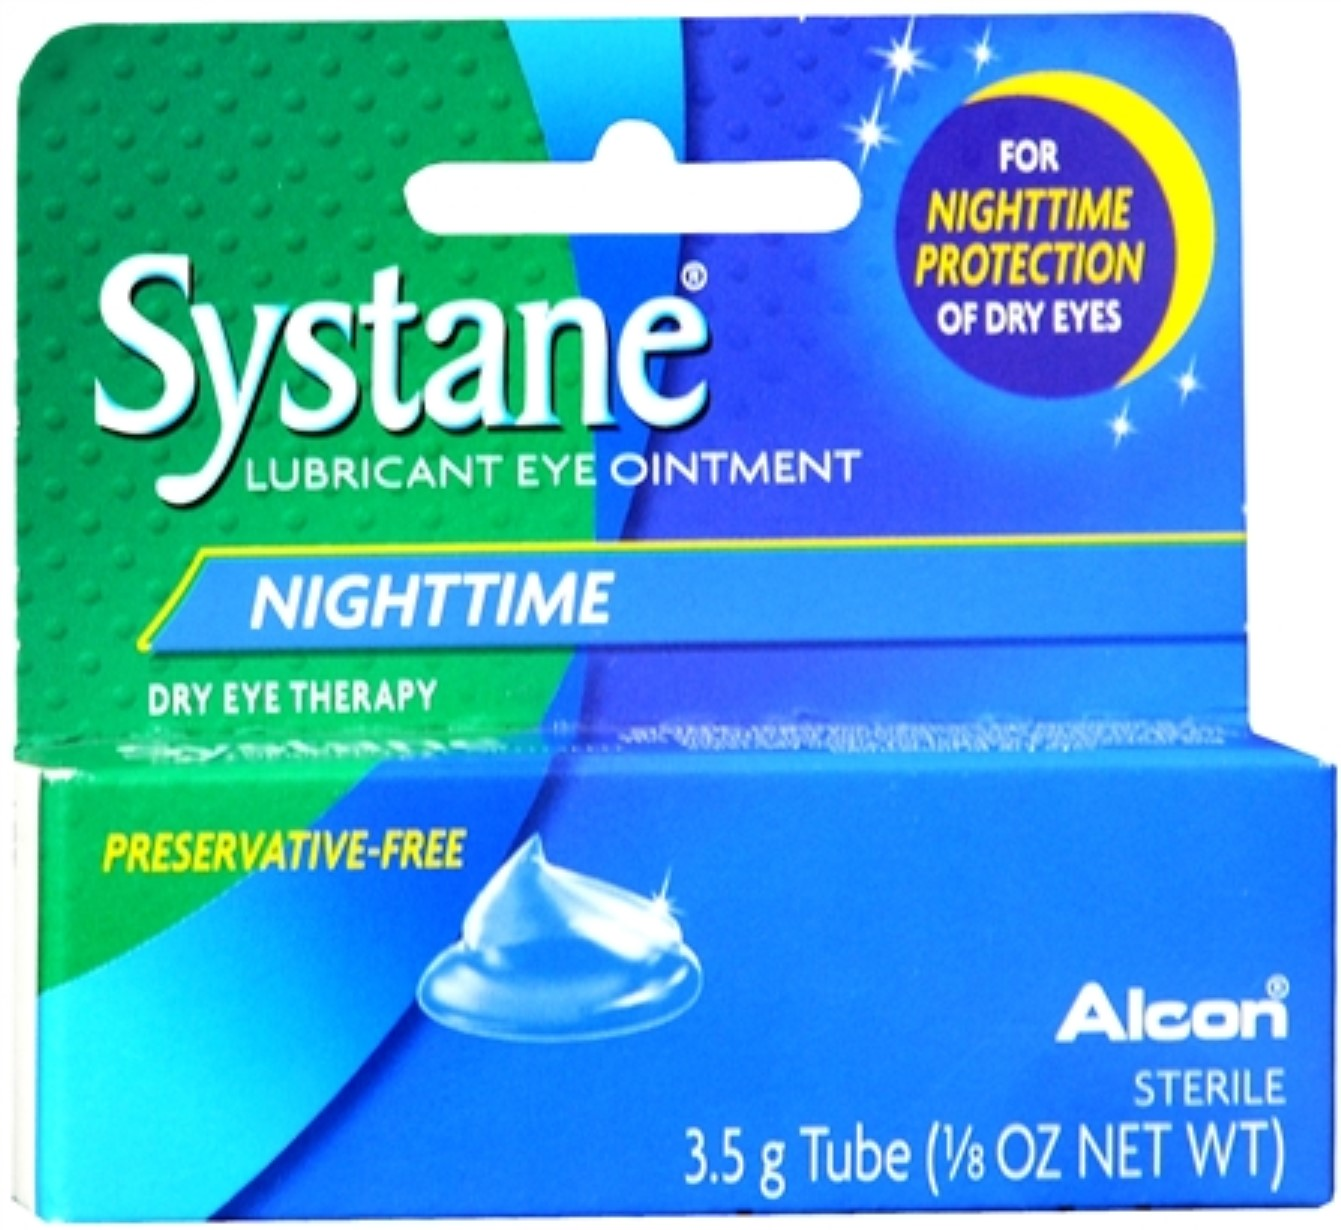 Systane Nighttime Lubricant Eye Ointment 3.50 g (Pack of 6)